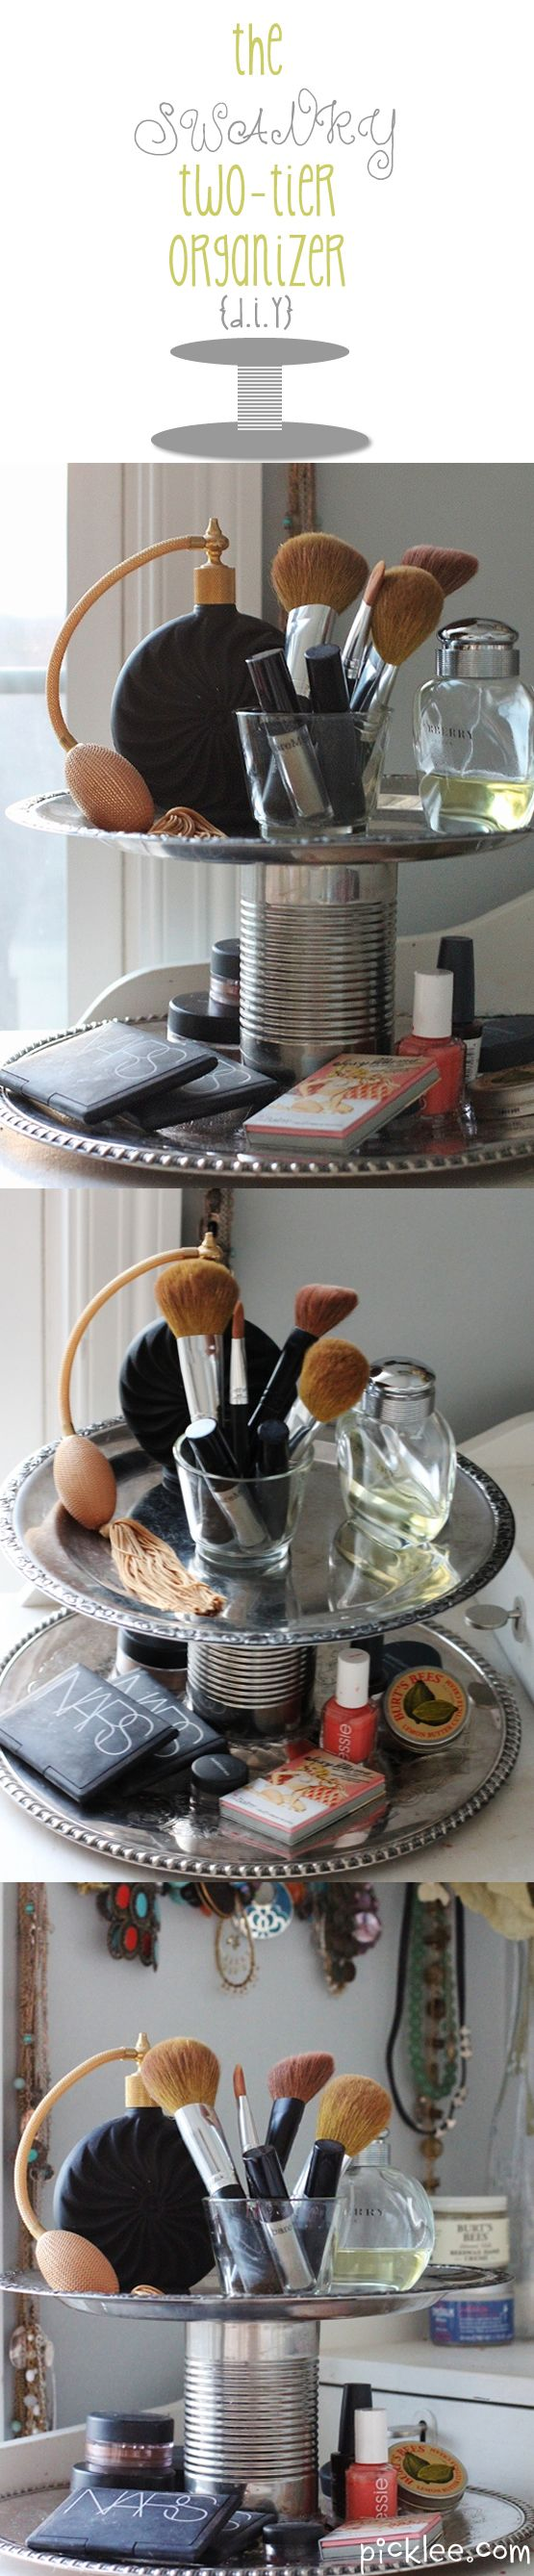 Fabulous Up-Cycled Cosmetic Organizer DIY... using a tin can and vintage plates!Sprays Painting, Vintage Plates, Fabulous Up Cycling, Makeup, Cake Stands, Up Cycling Cosmetics, Two Tiered, Organic Diy, Cosmetics Organic